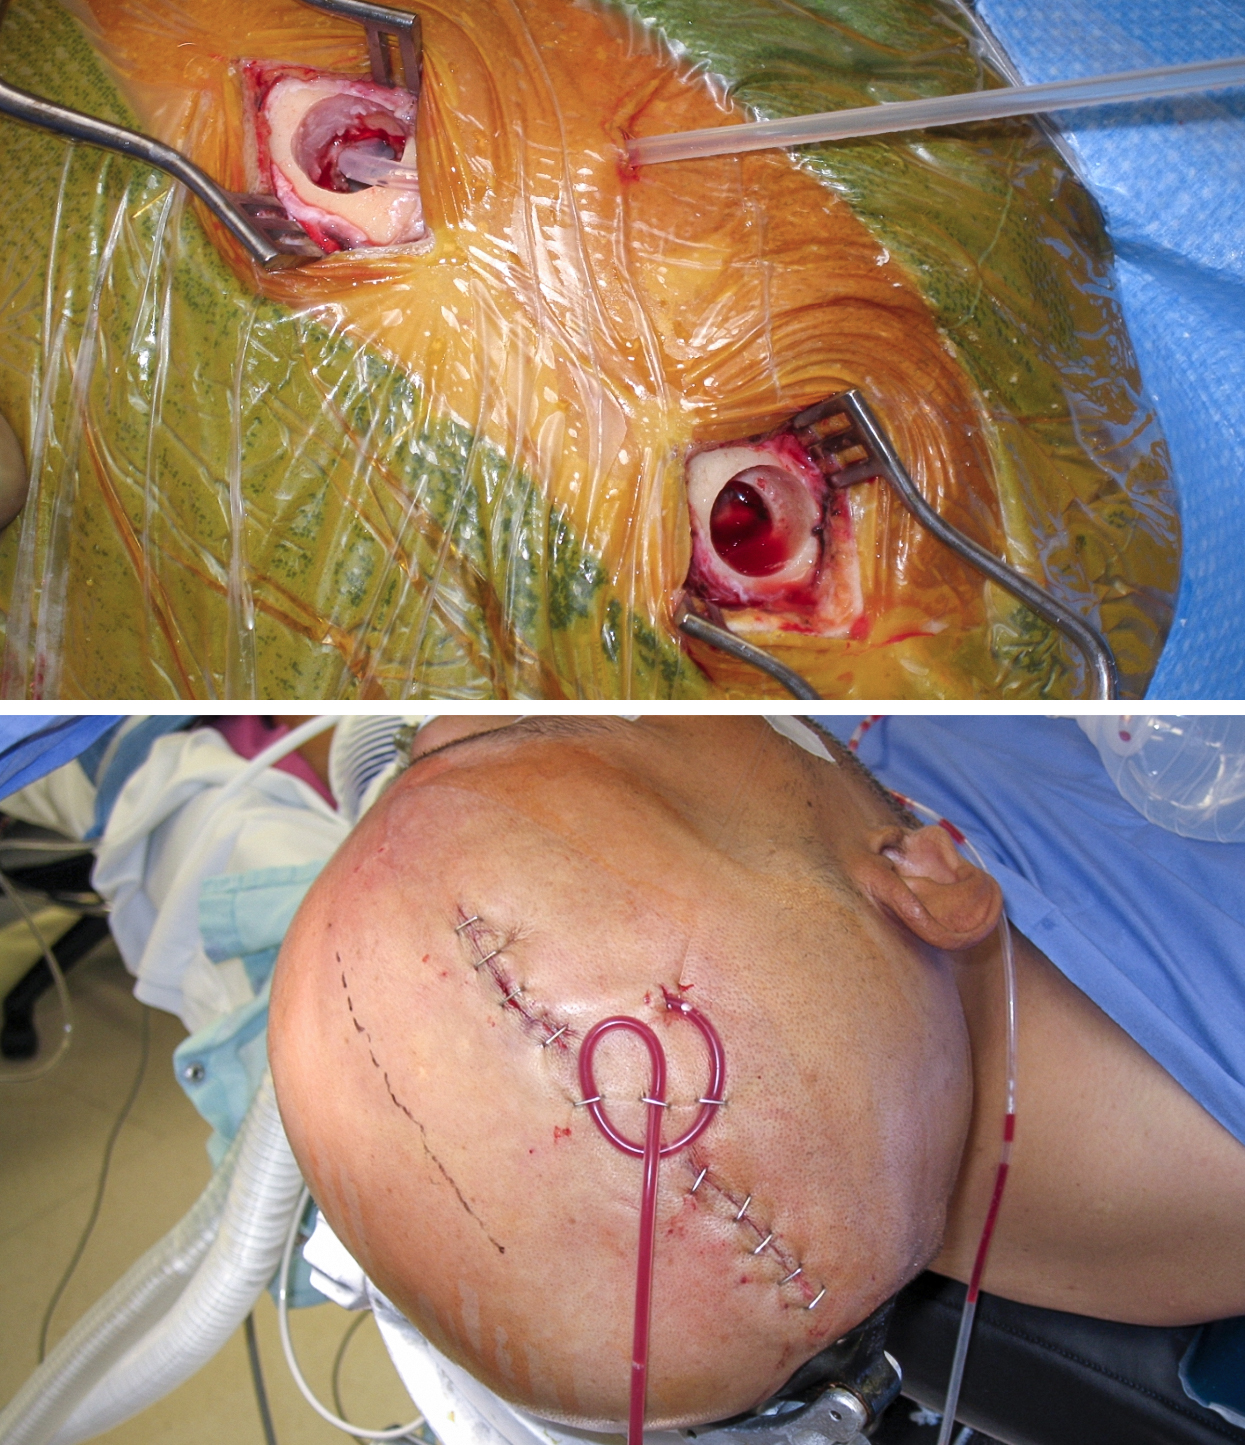 Figure 6: Placement of a drain through the anterior burr hole and its fixation to the scalp is shown. The upper photo demonstrates how the drain is tunneled subcutaneously, while the bottom photo shows how the drain is stapled to the scalp to achieve adequate fixation.